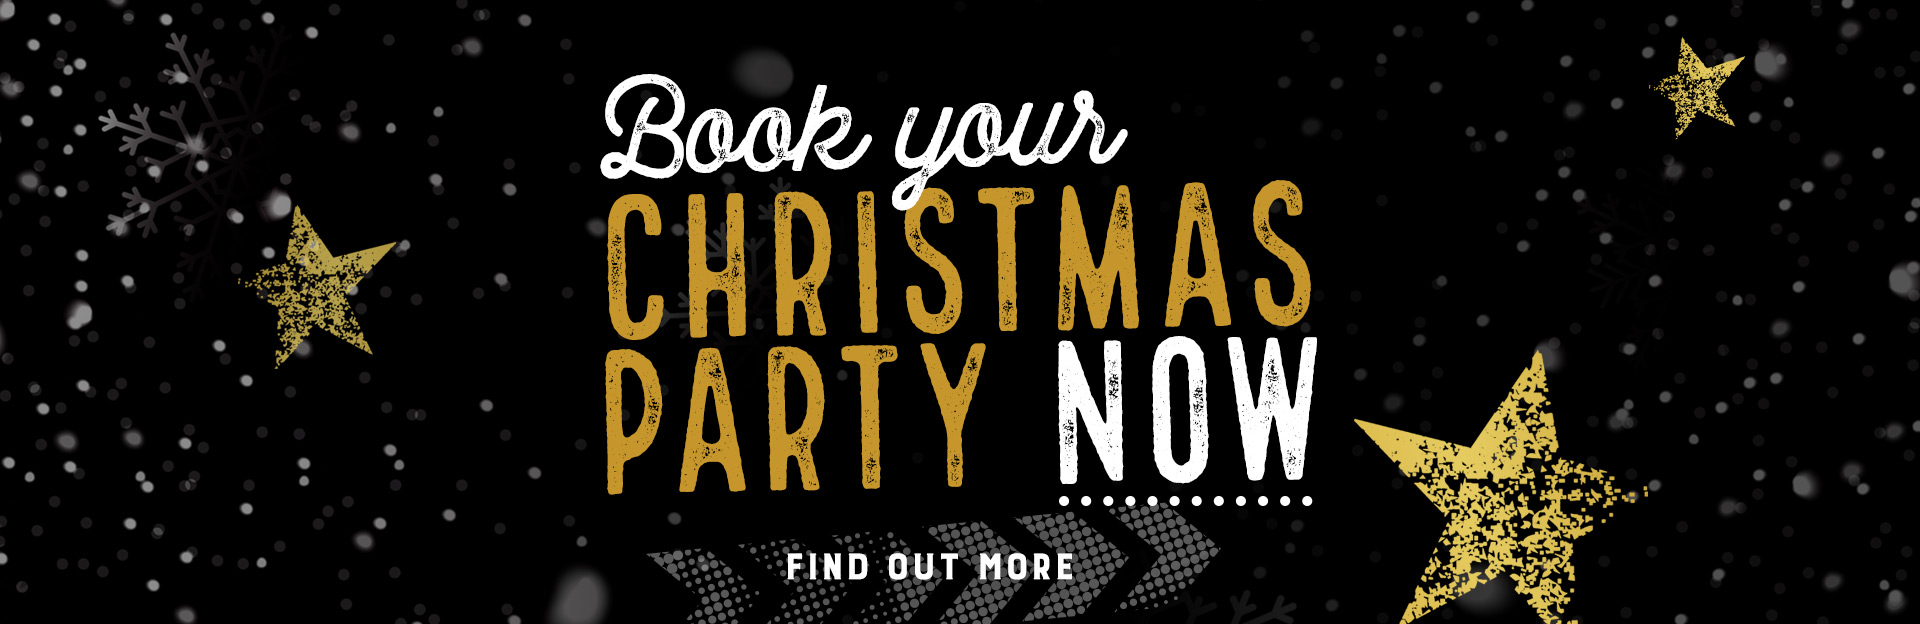 Book your Christmas party now